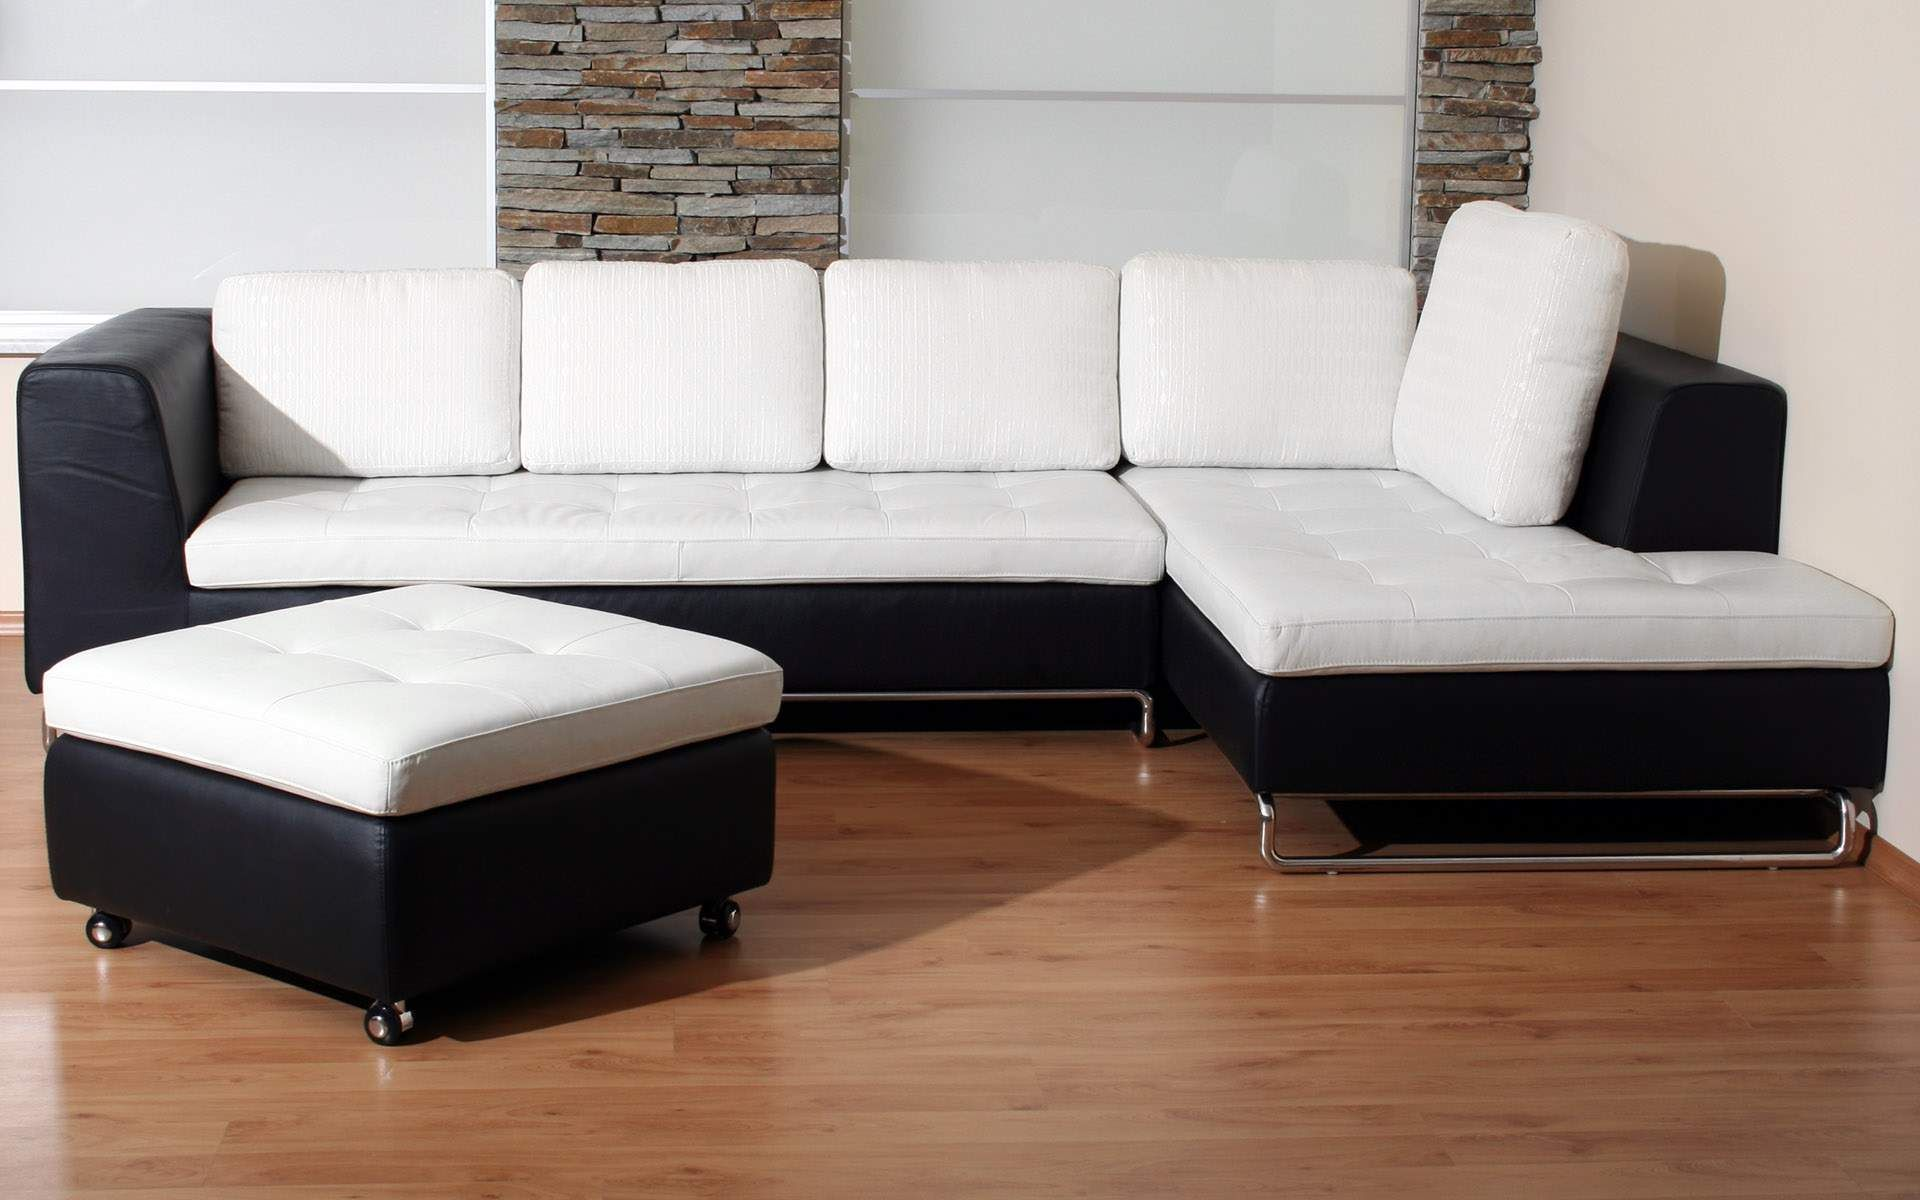 Awesome Modern Style White Sofas Living Room Furniture Decor | Home ...